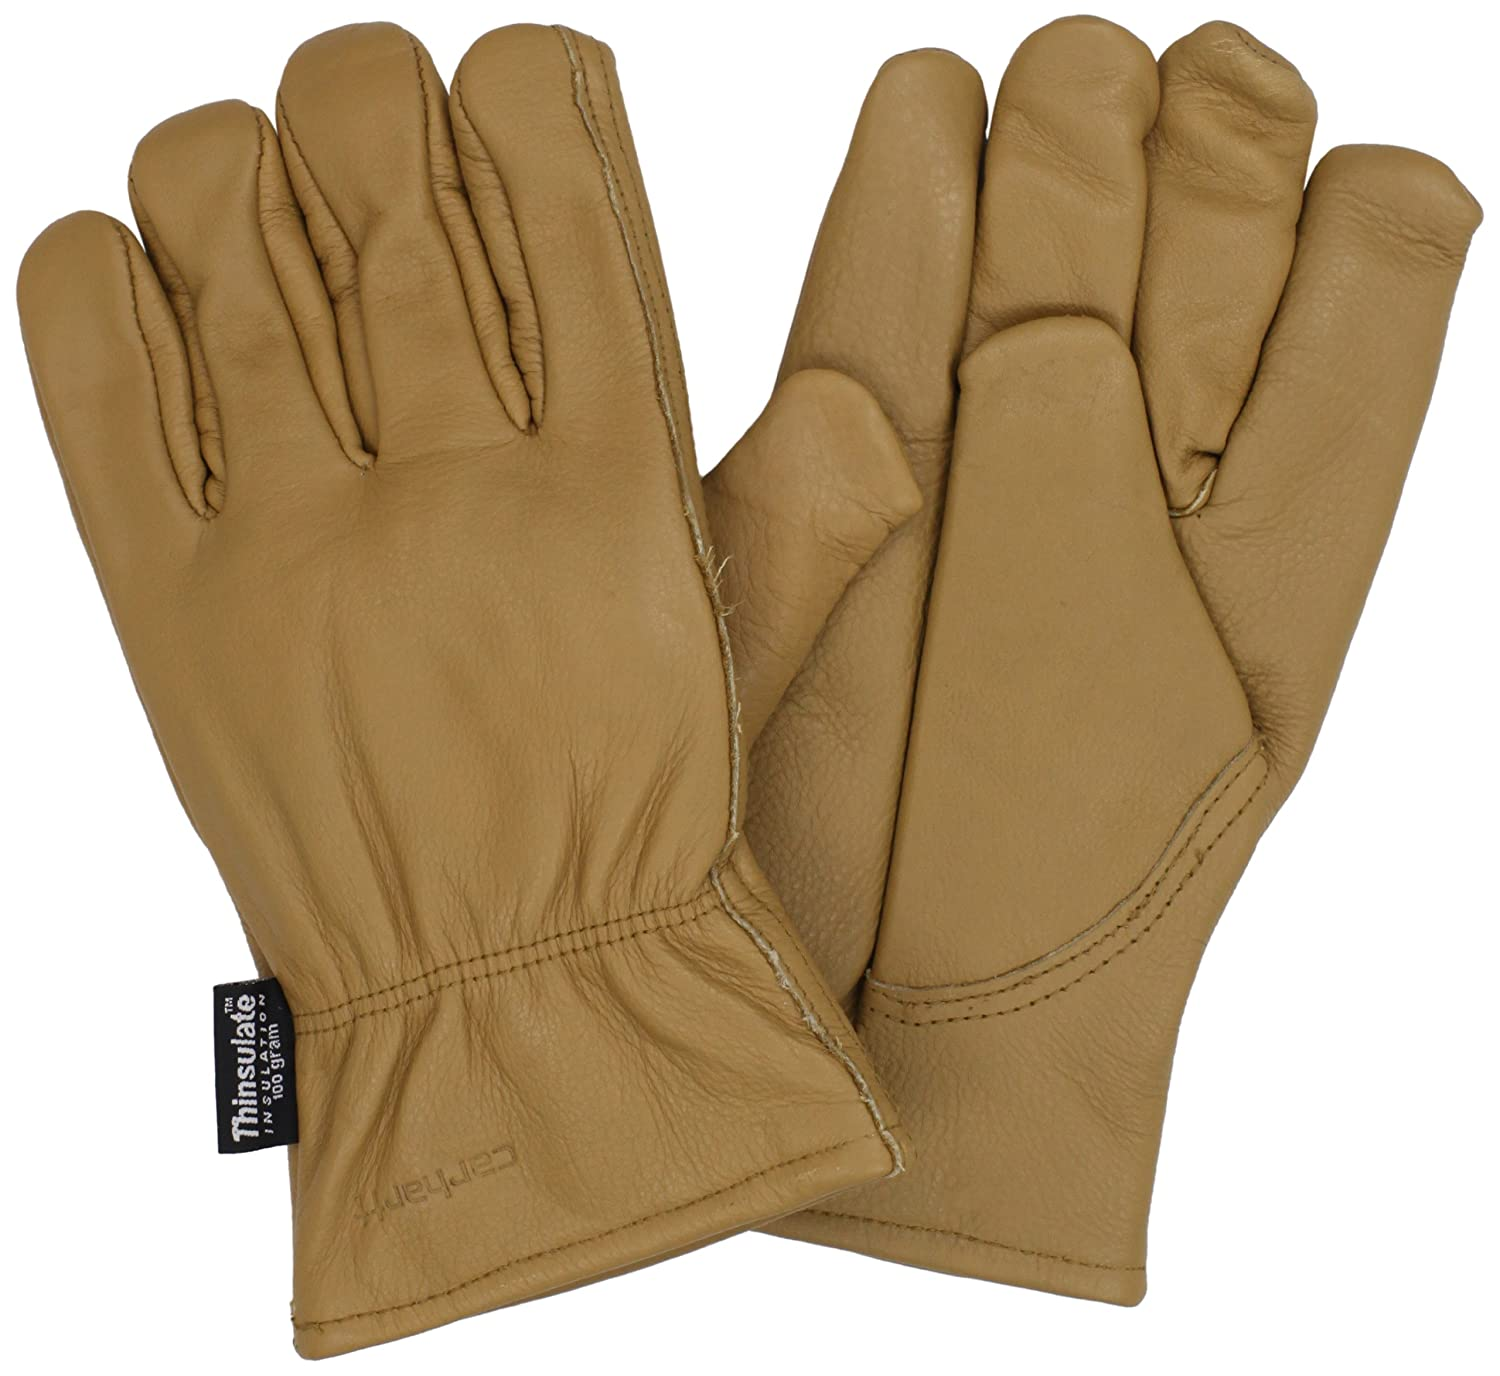 Best driving gloves ever - Amazon Com Carhartt Men S Insulated Full Grain Leather Driver Work Glove Black Small Clothing